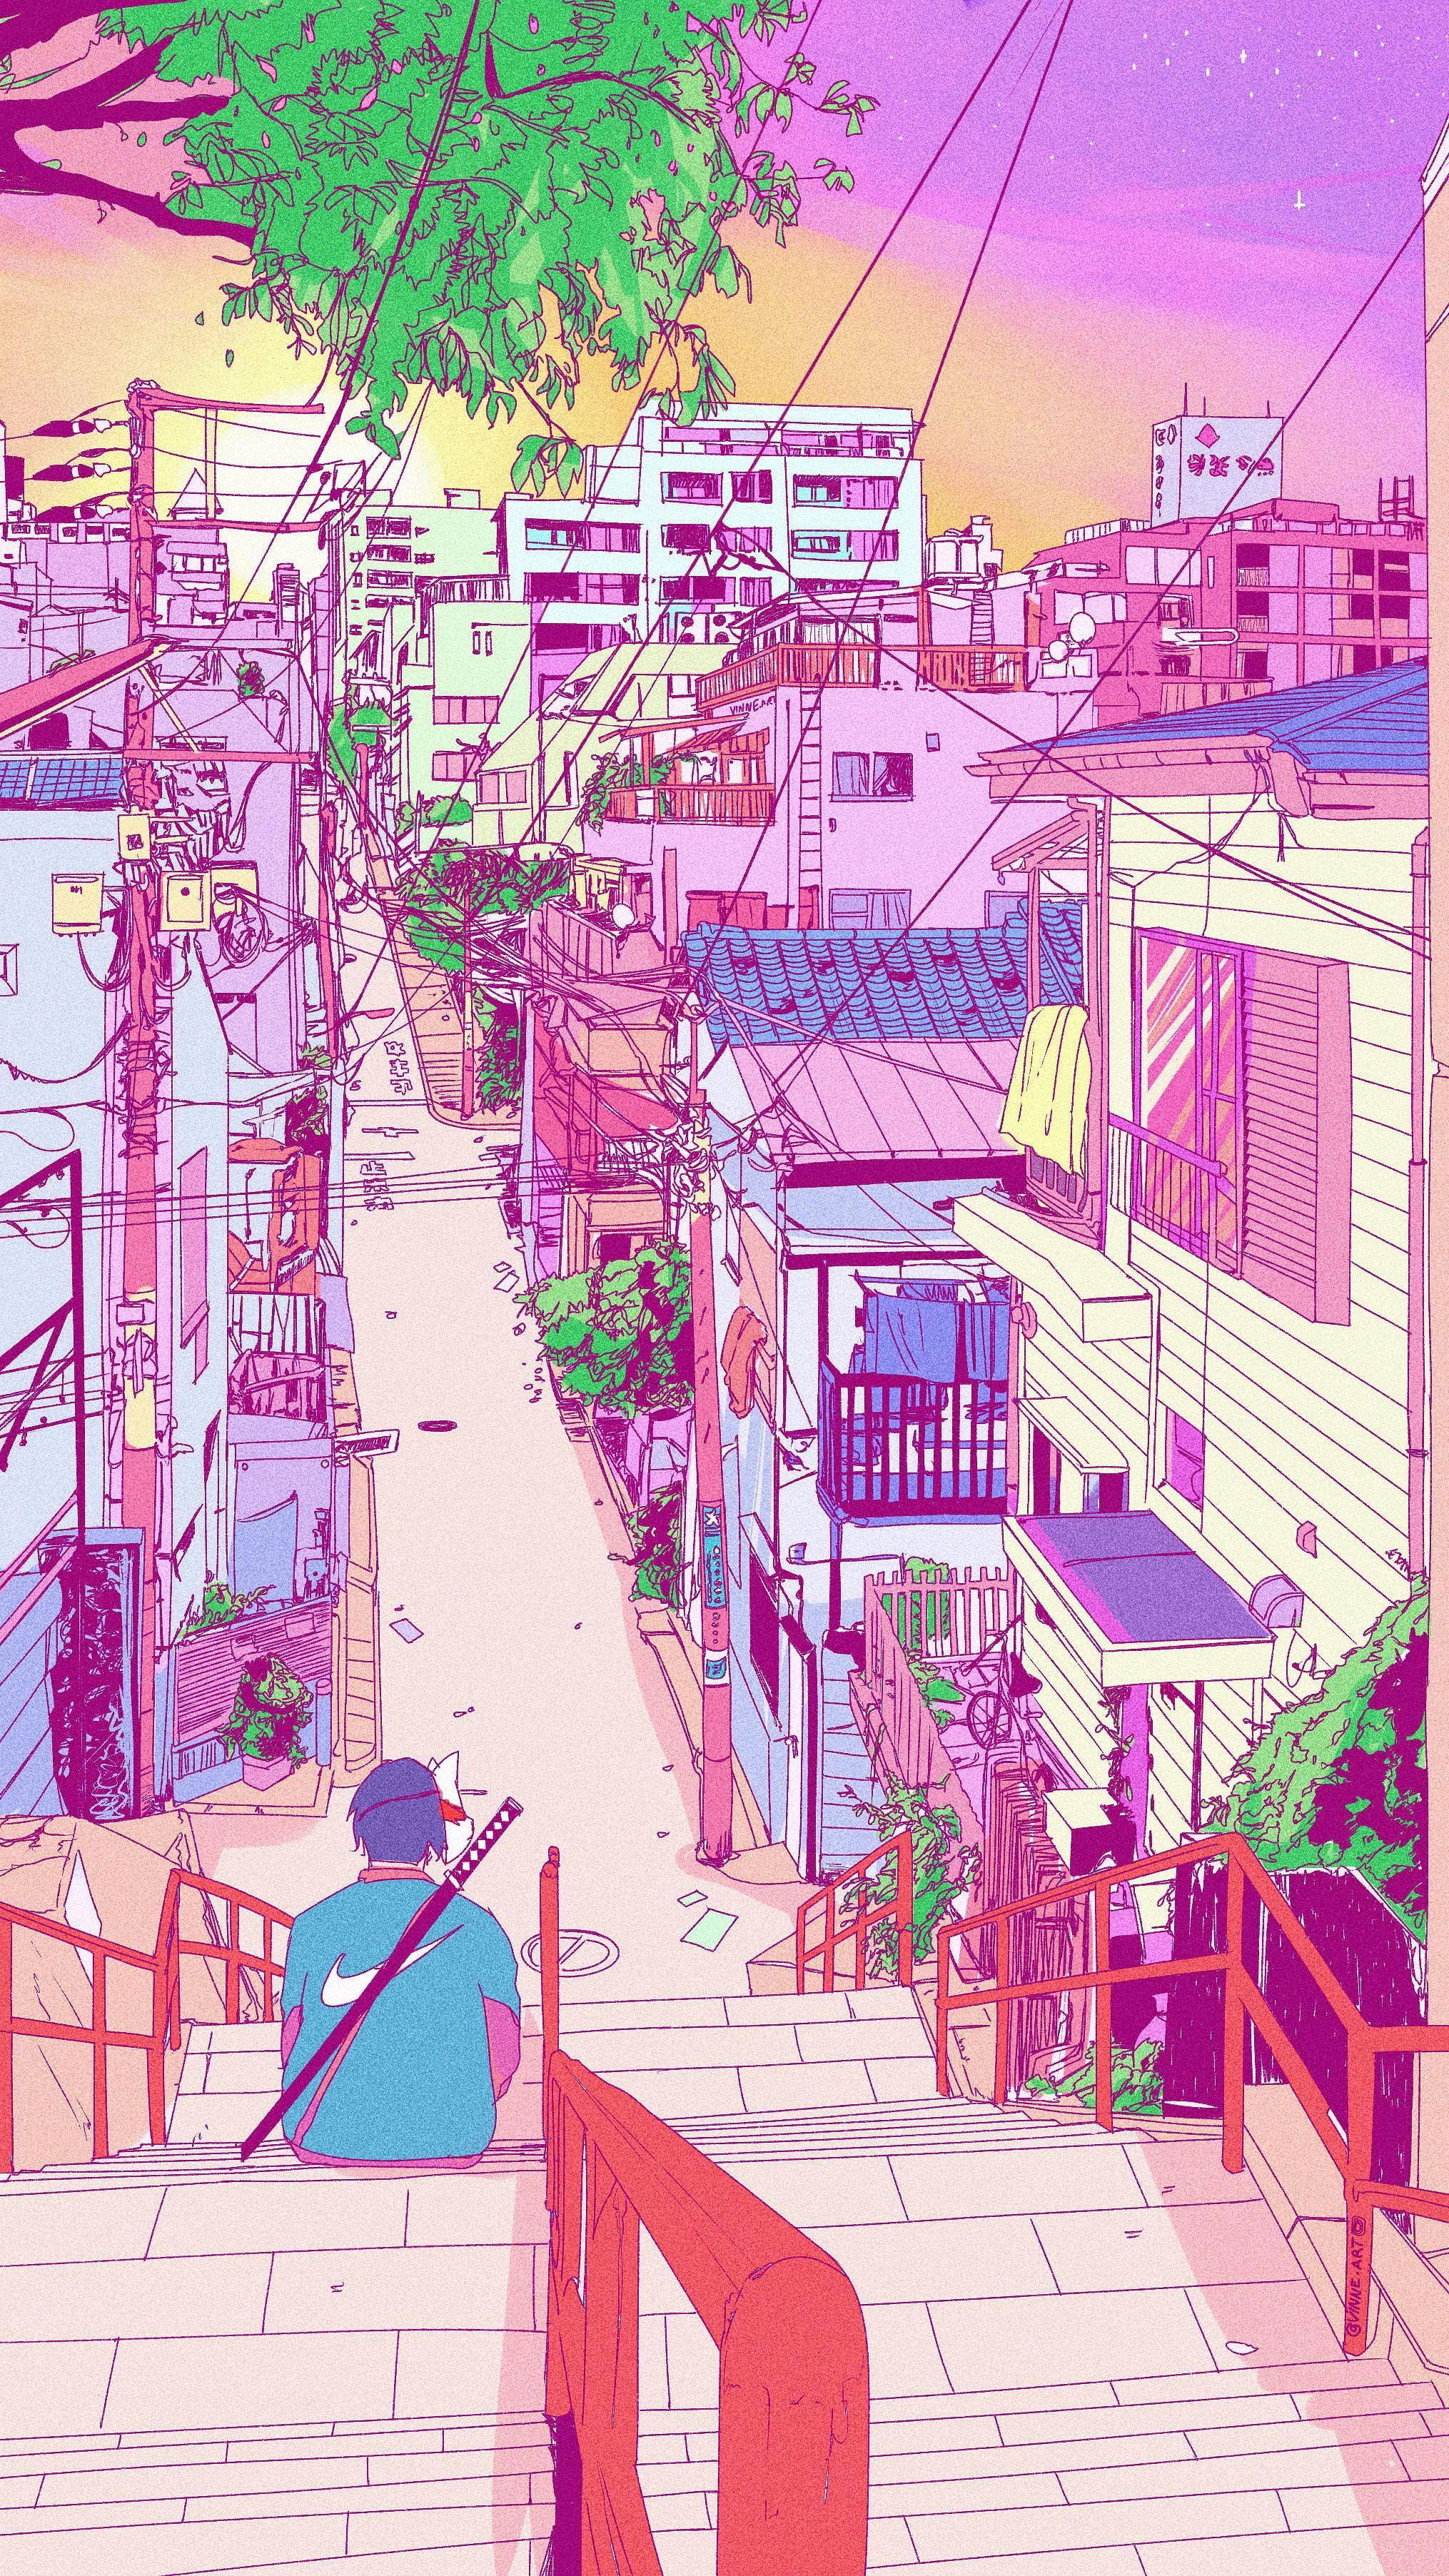 Retro Anime Wallpaper In 2020 Anime Scenery Wallpaper Scenery Wallpaper Aesthetic Wallpapers